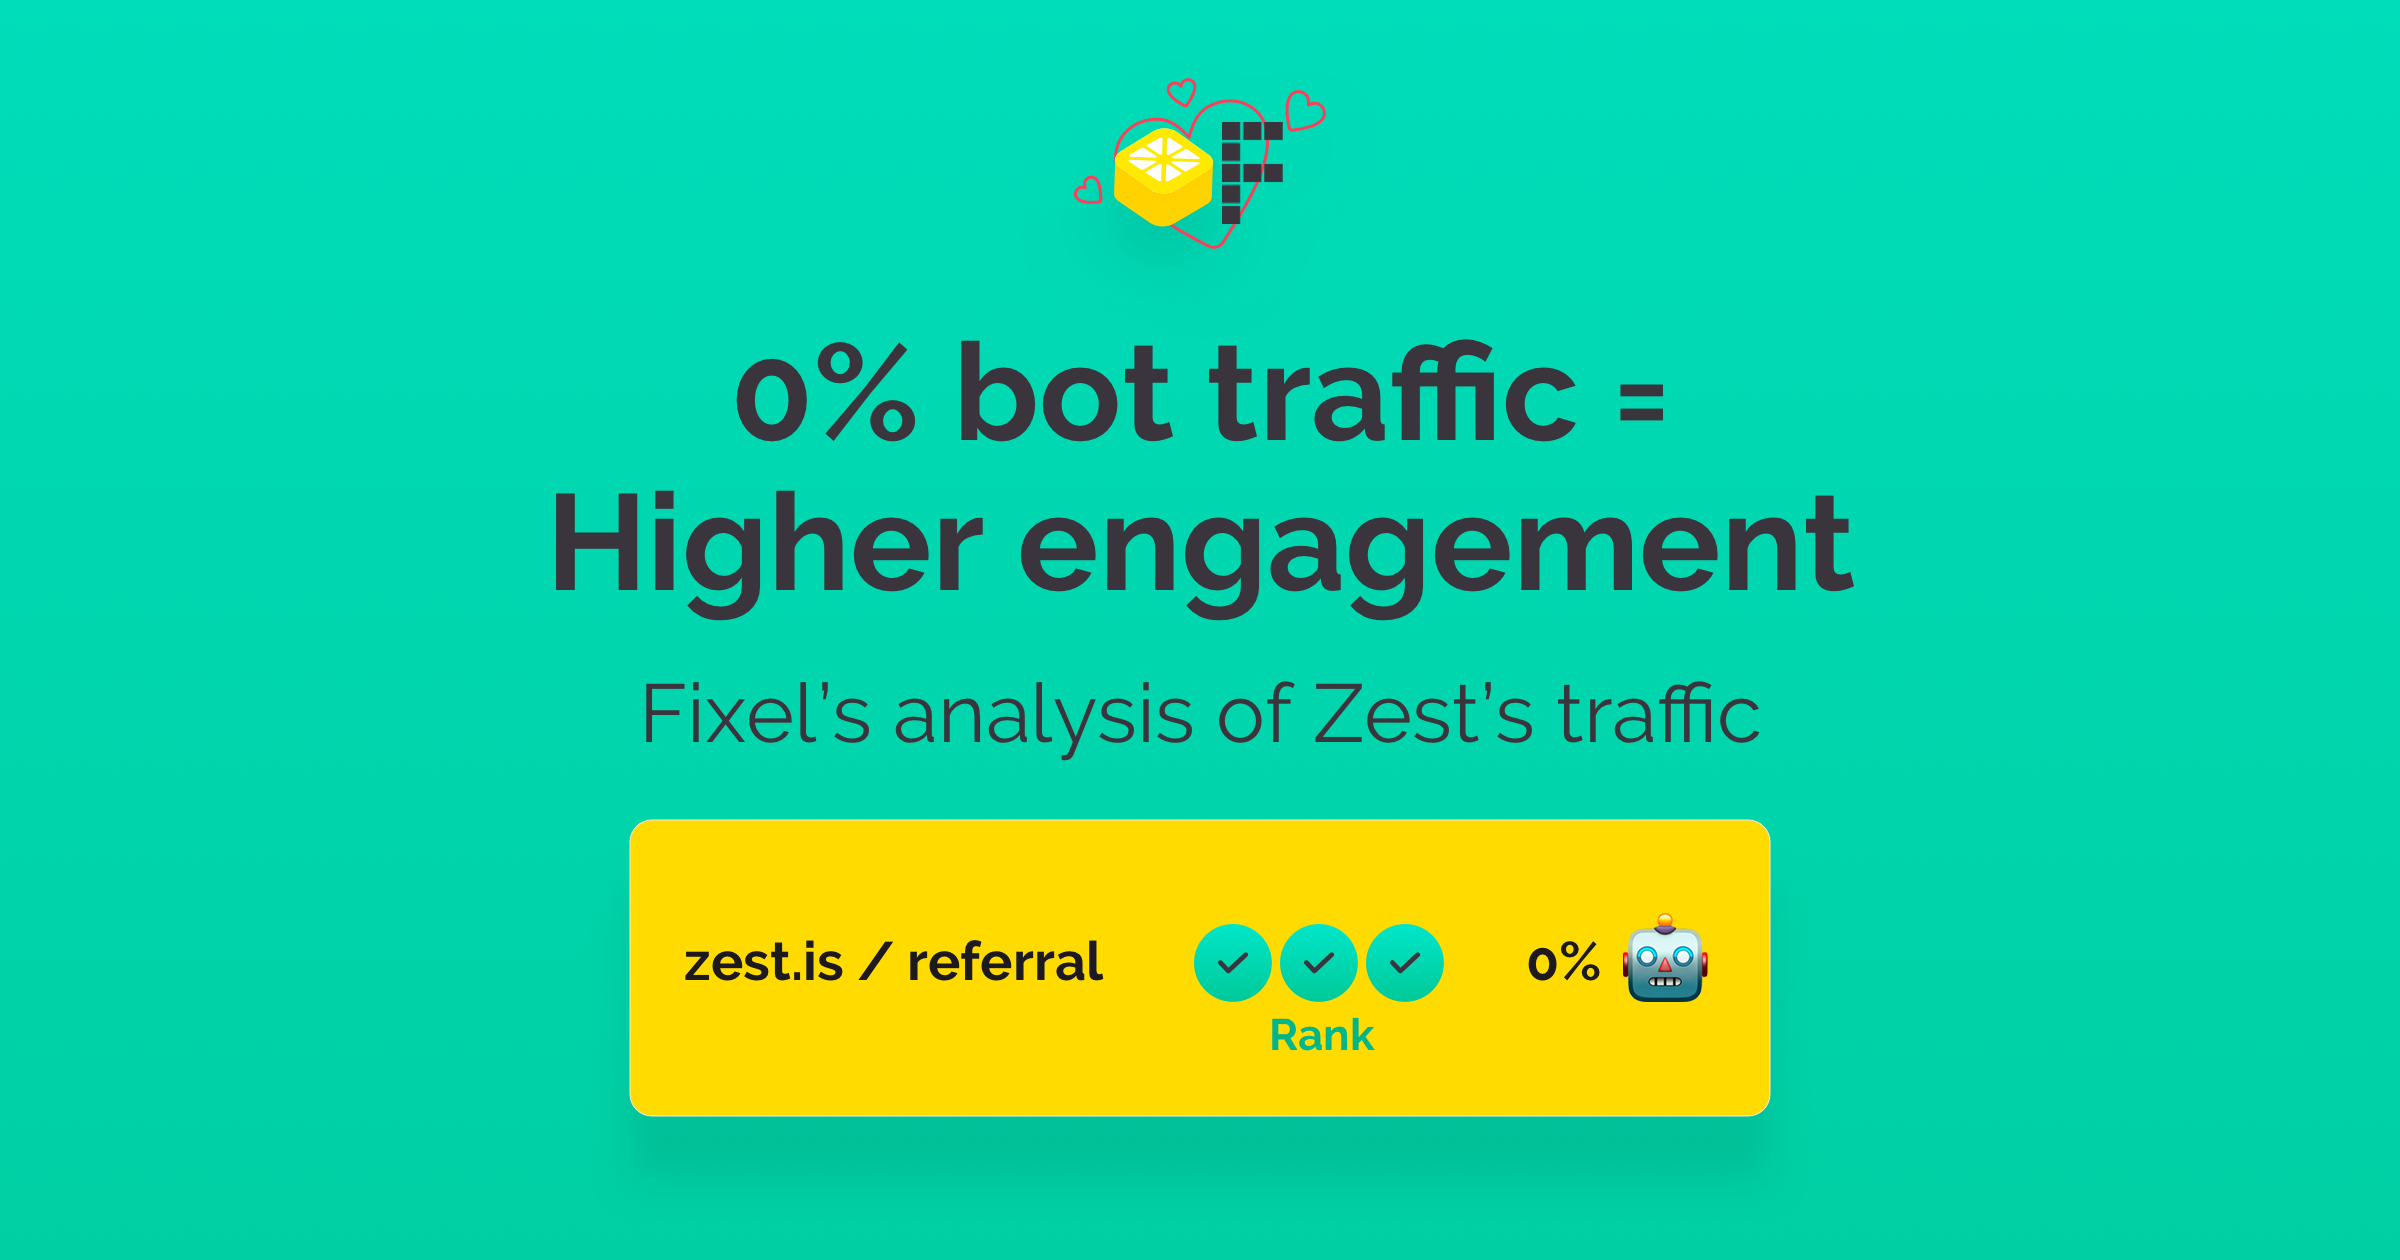 Hero image titled: 0% bot traffic = Higher engagement Fixel's analysis of Zest's traffic